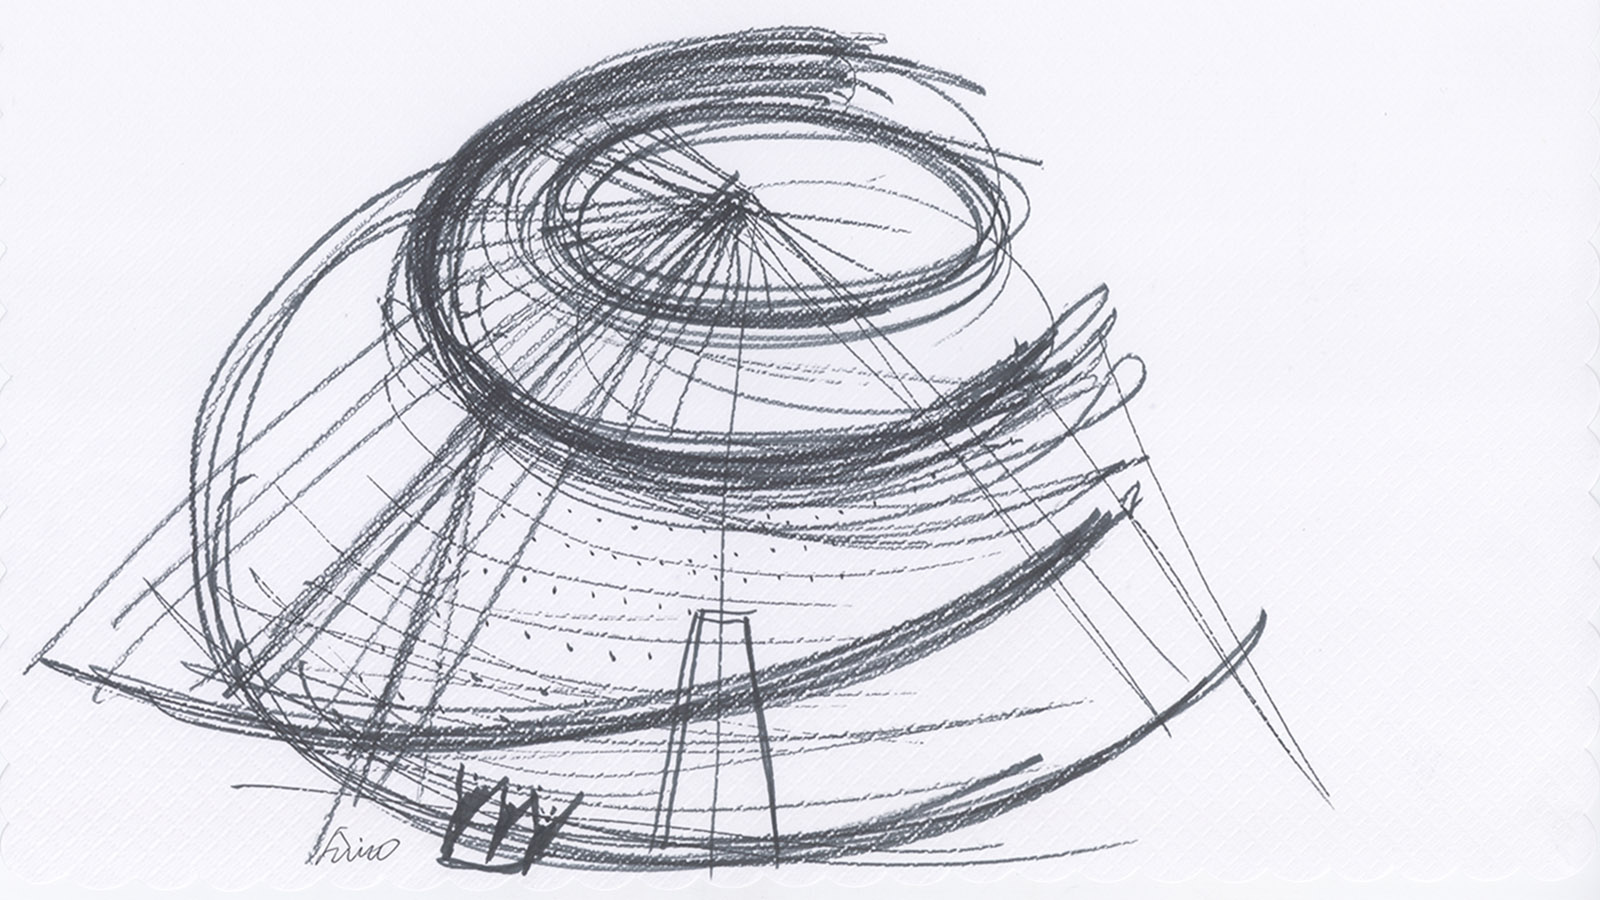 Sketch von Tadao Ando. ©Tadao Ando. Courtesy Collection Pinault – Paris.